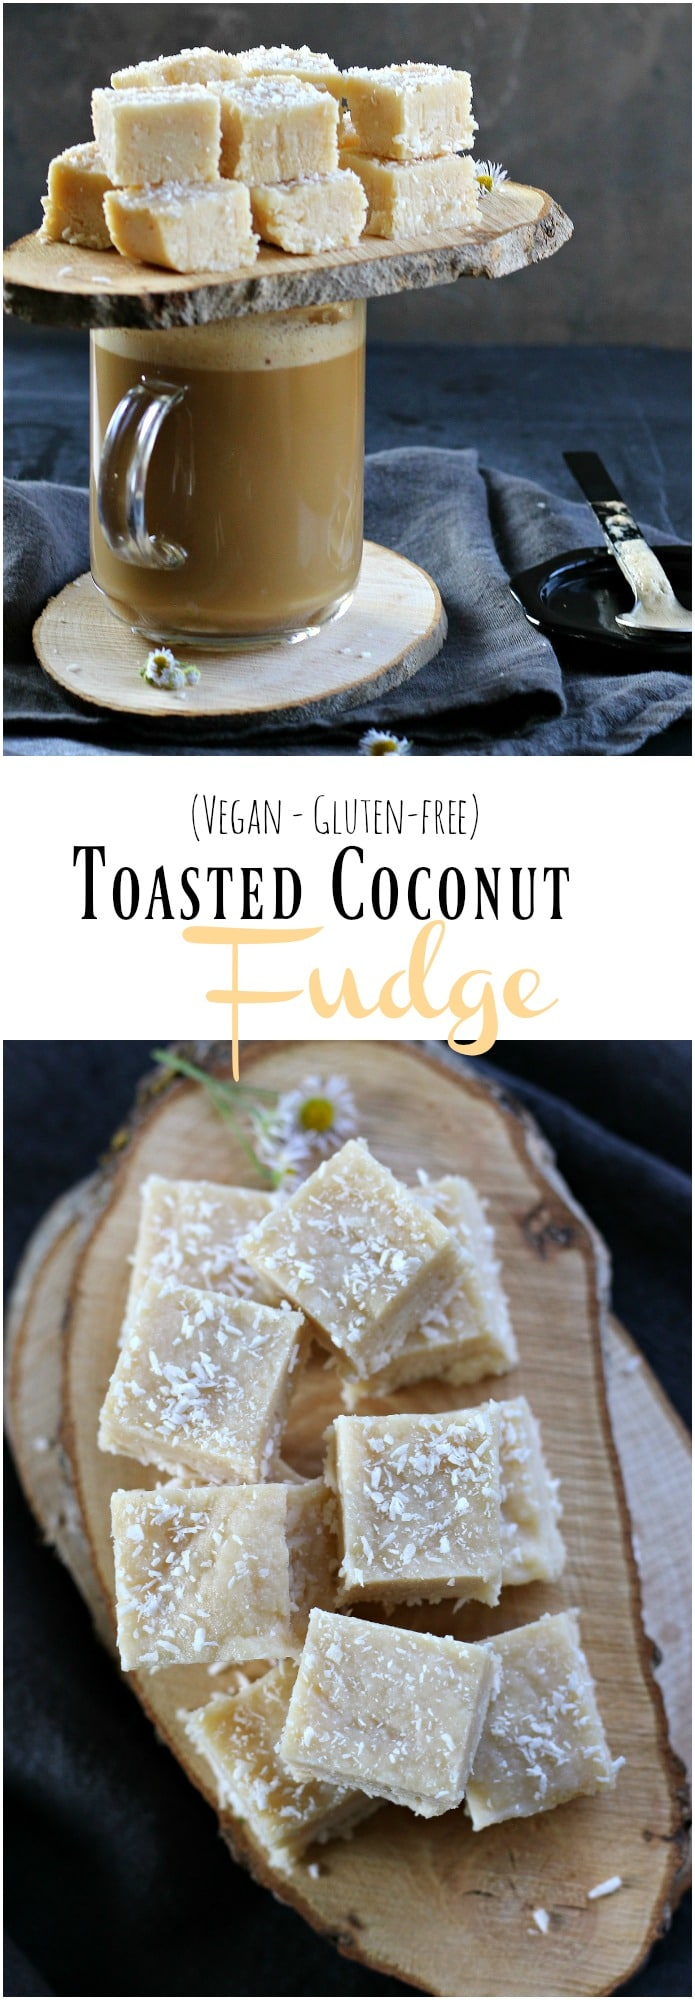 Vegan and Gluten-free, these DELICIOUS Toasted Coconut Fudge only takes 10 minutes to make! gardeninthekitchen.com